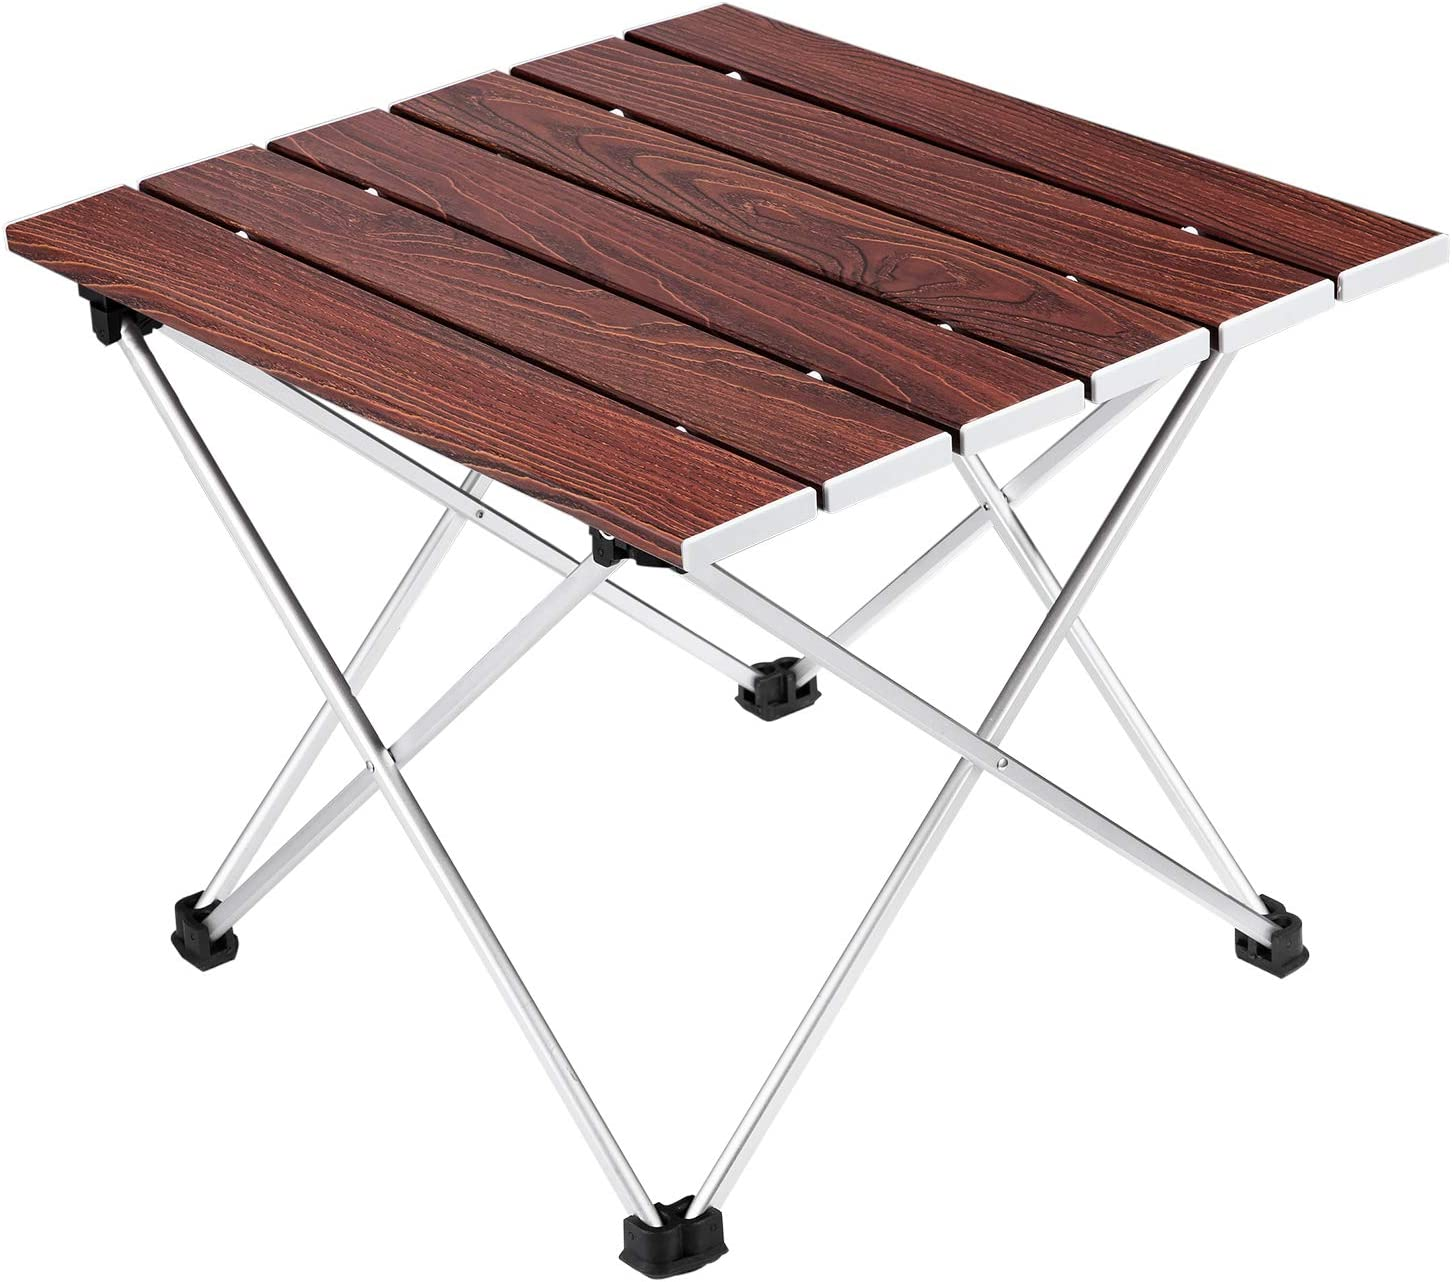 Ledeak Camping Folding Table, Portable Lightweight Foldable Compact Small Roll up Table with Carry Bag, Perfect for Outdoor, Camping, Picnic, Beach, Hiking, Easy to Install & Clean